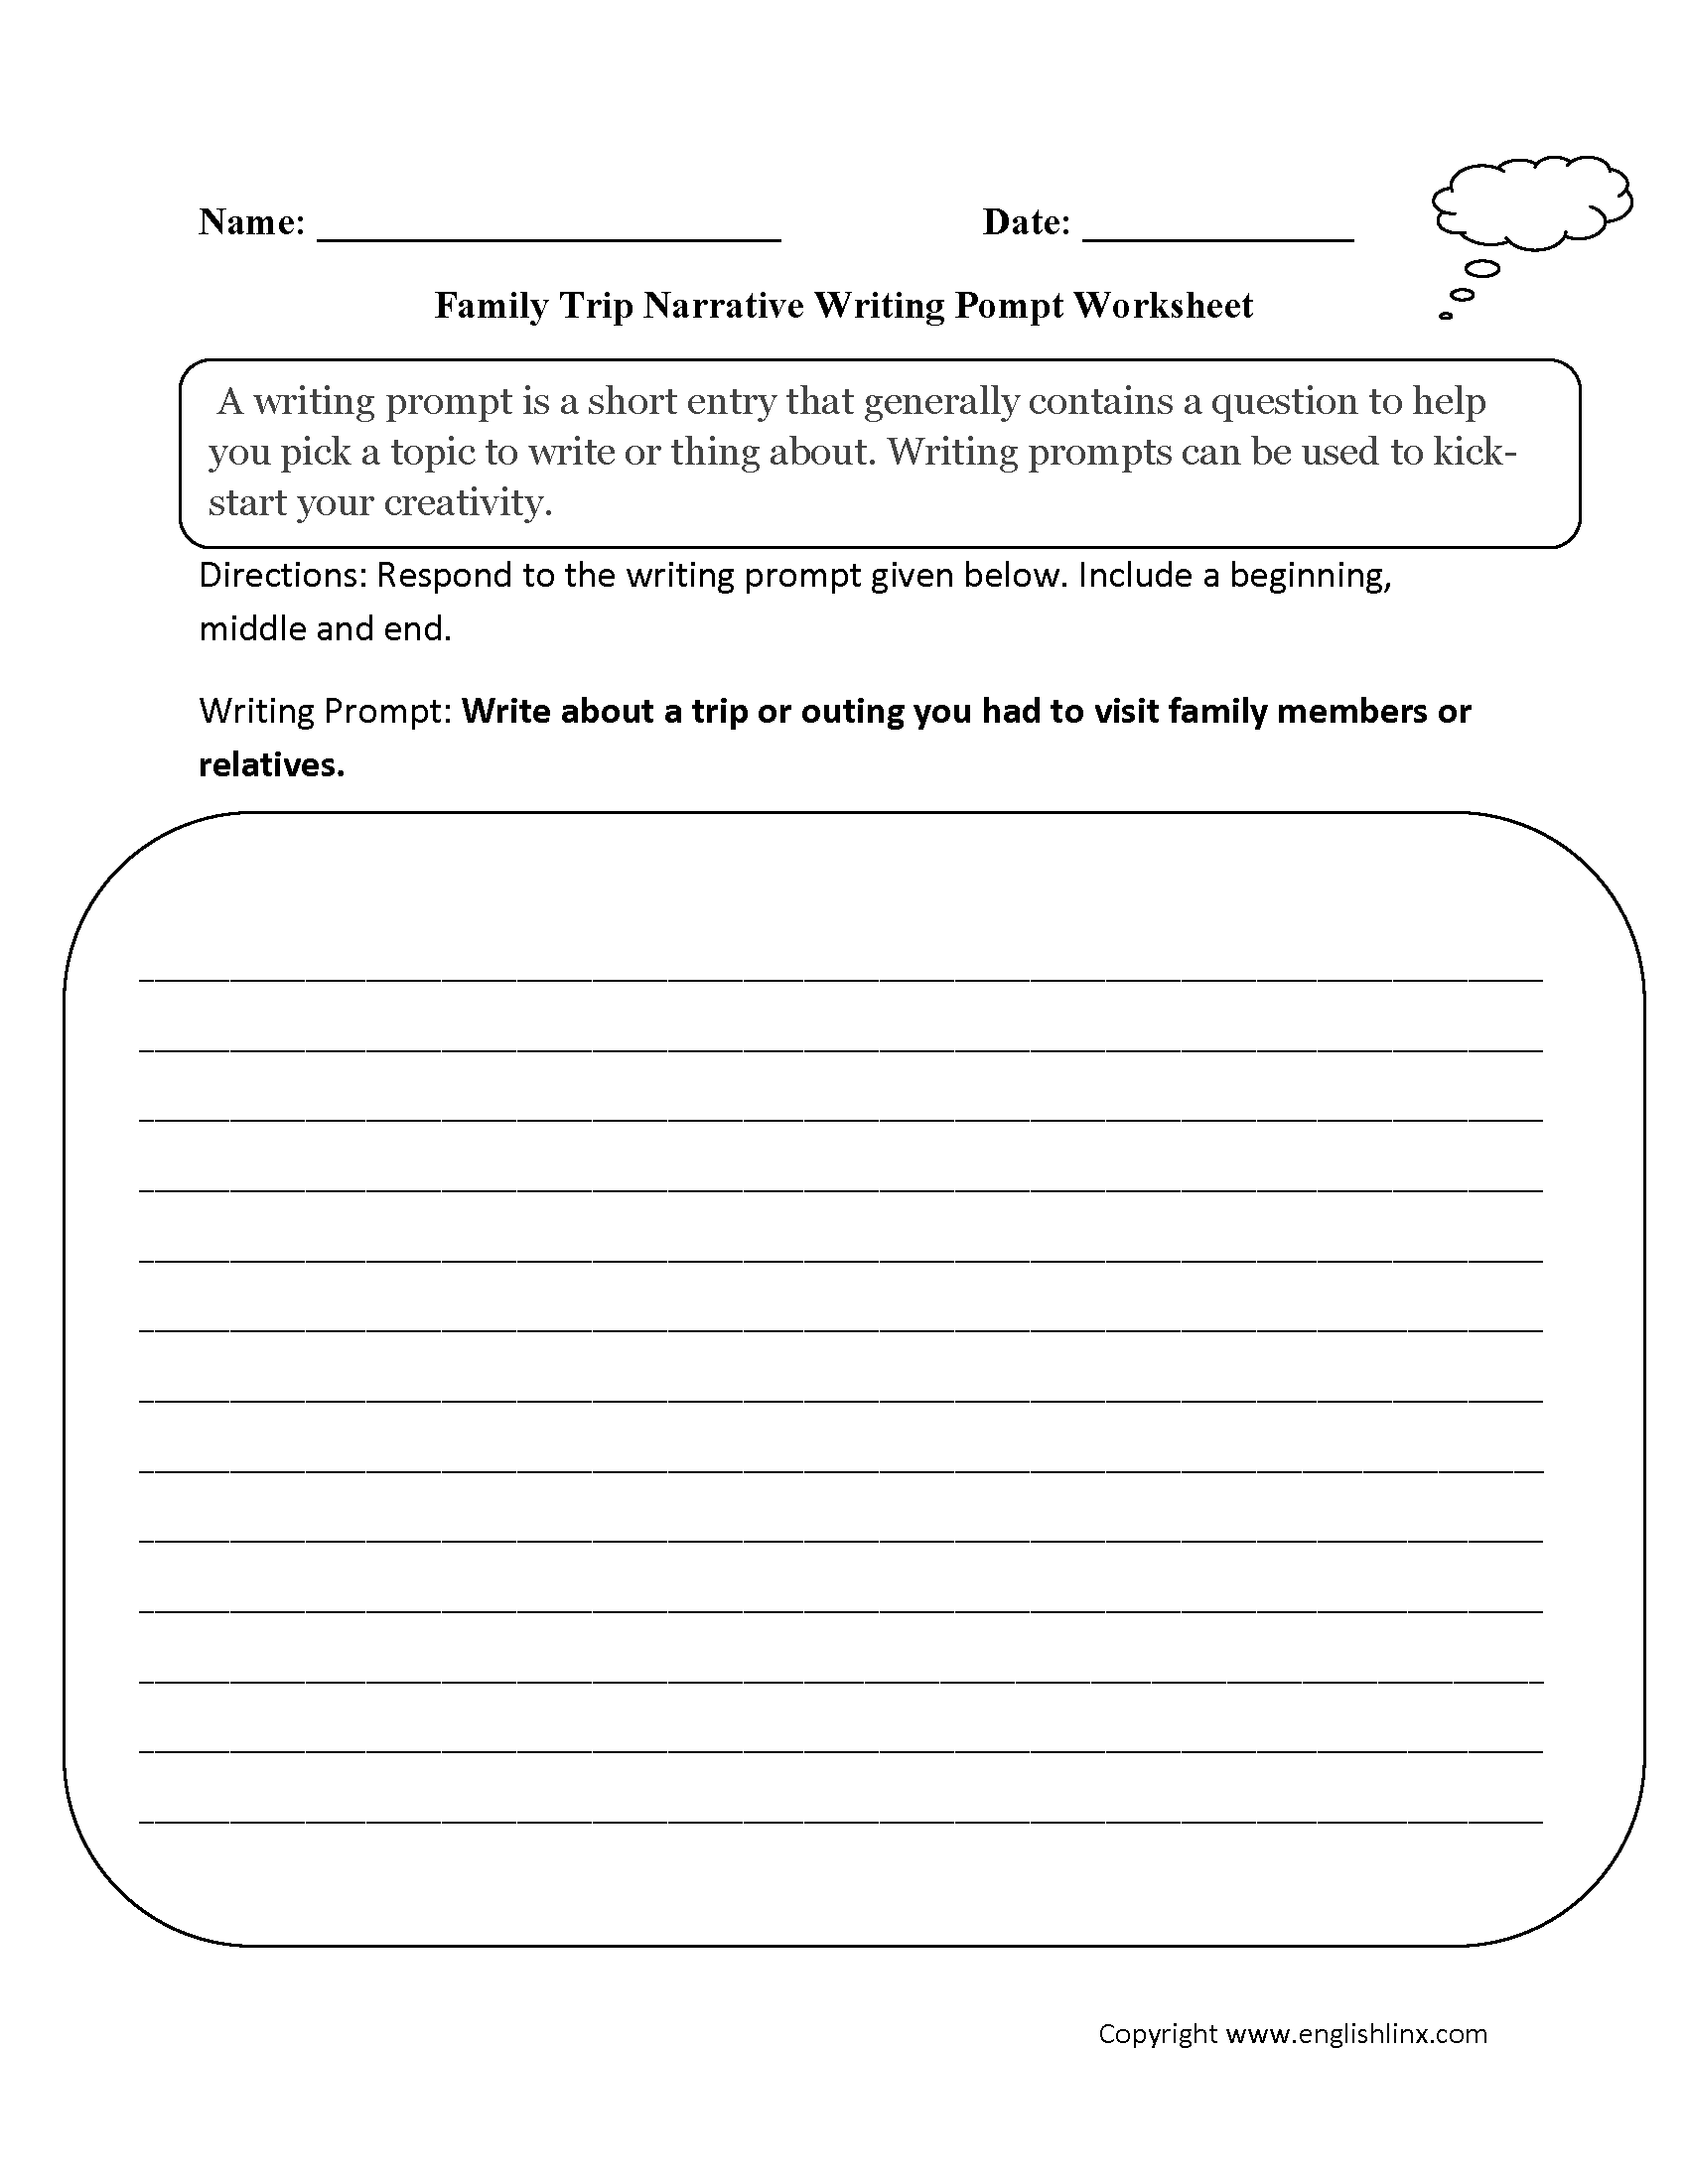 descriptive essay prompts 5th grade Grade 5 writing prompts page 3 november, 2012 imagine someone made an exciting announcement at school write about the announcement and what happened next.